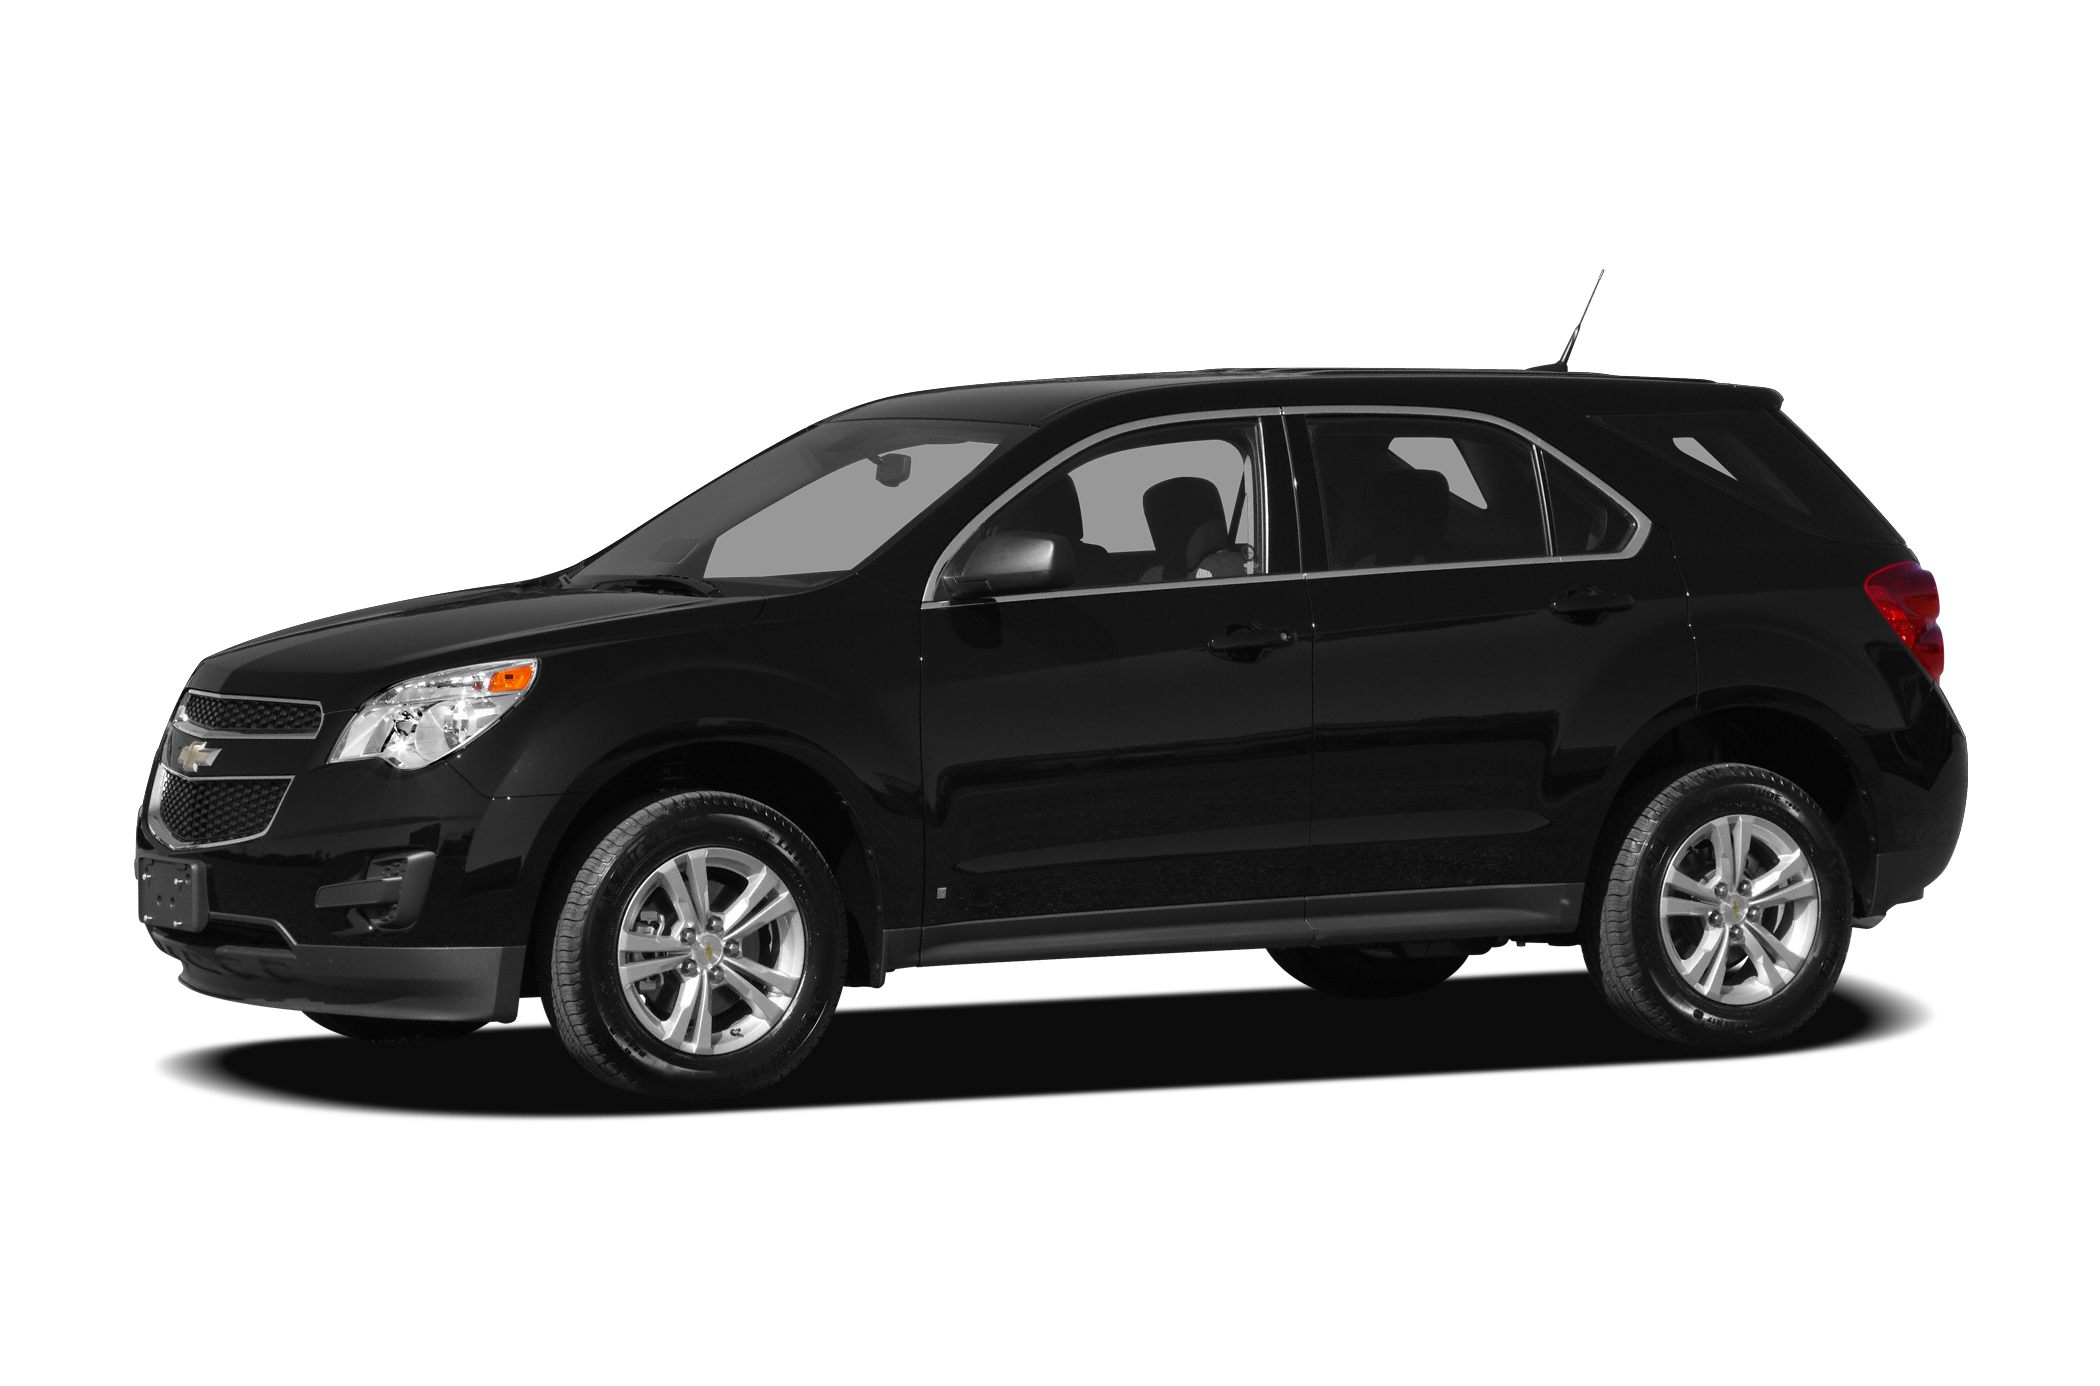 2010 Chevrolet Equinox LS Value Value 3 Year 100k miles limited Power Train Warranty with road si